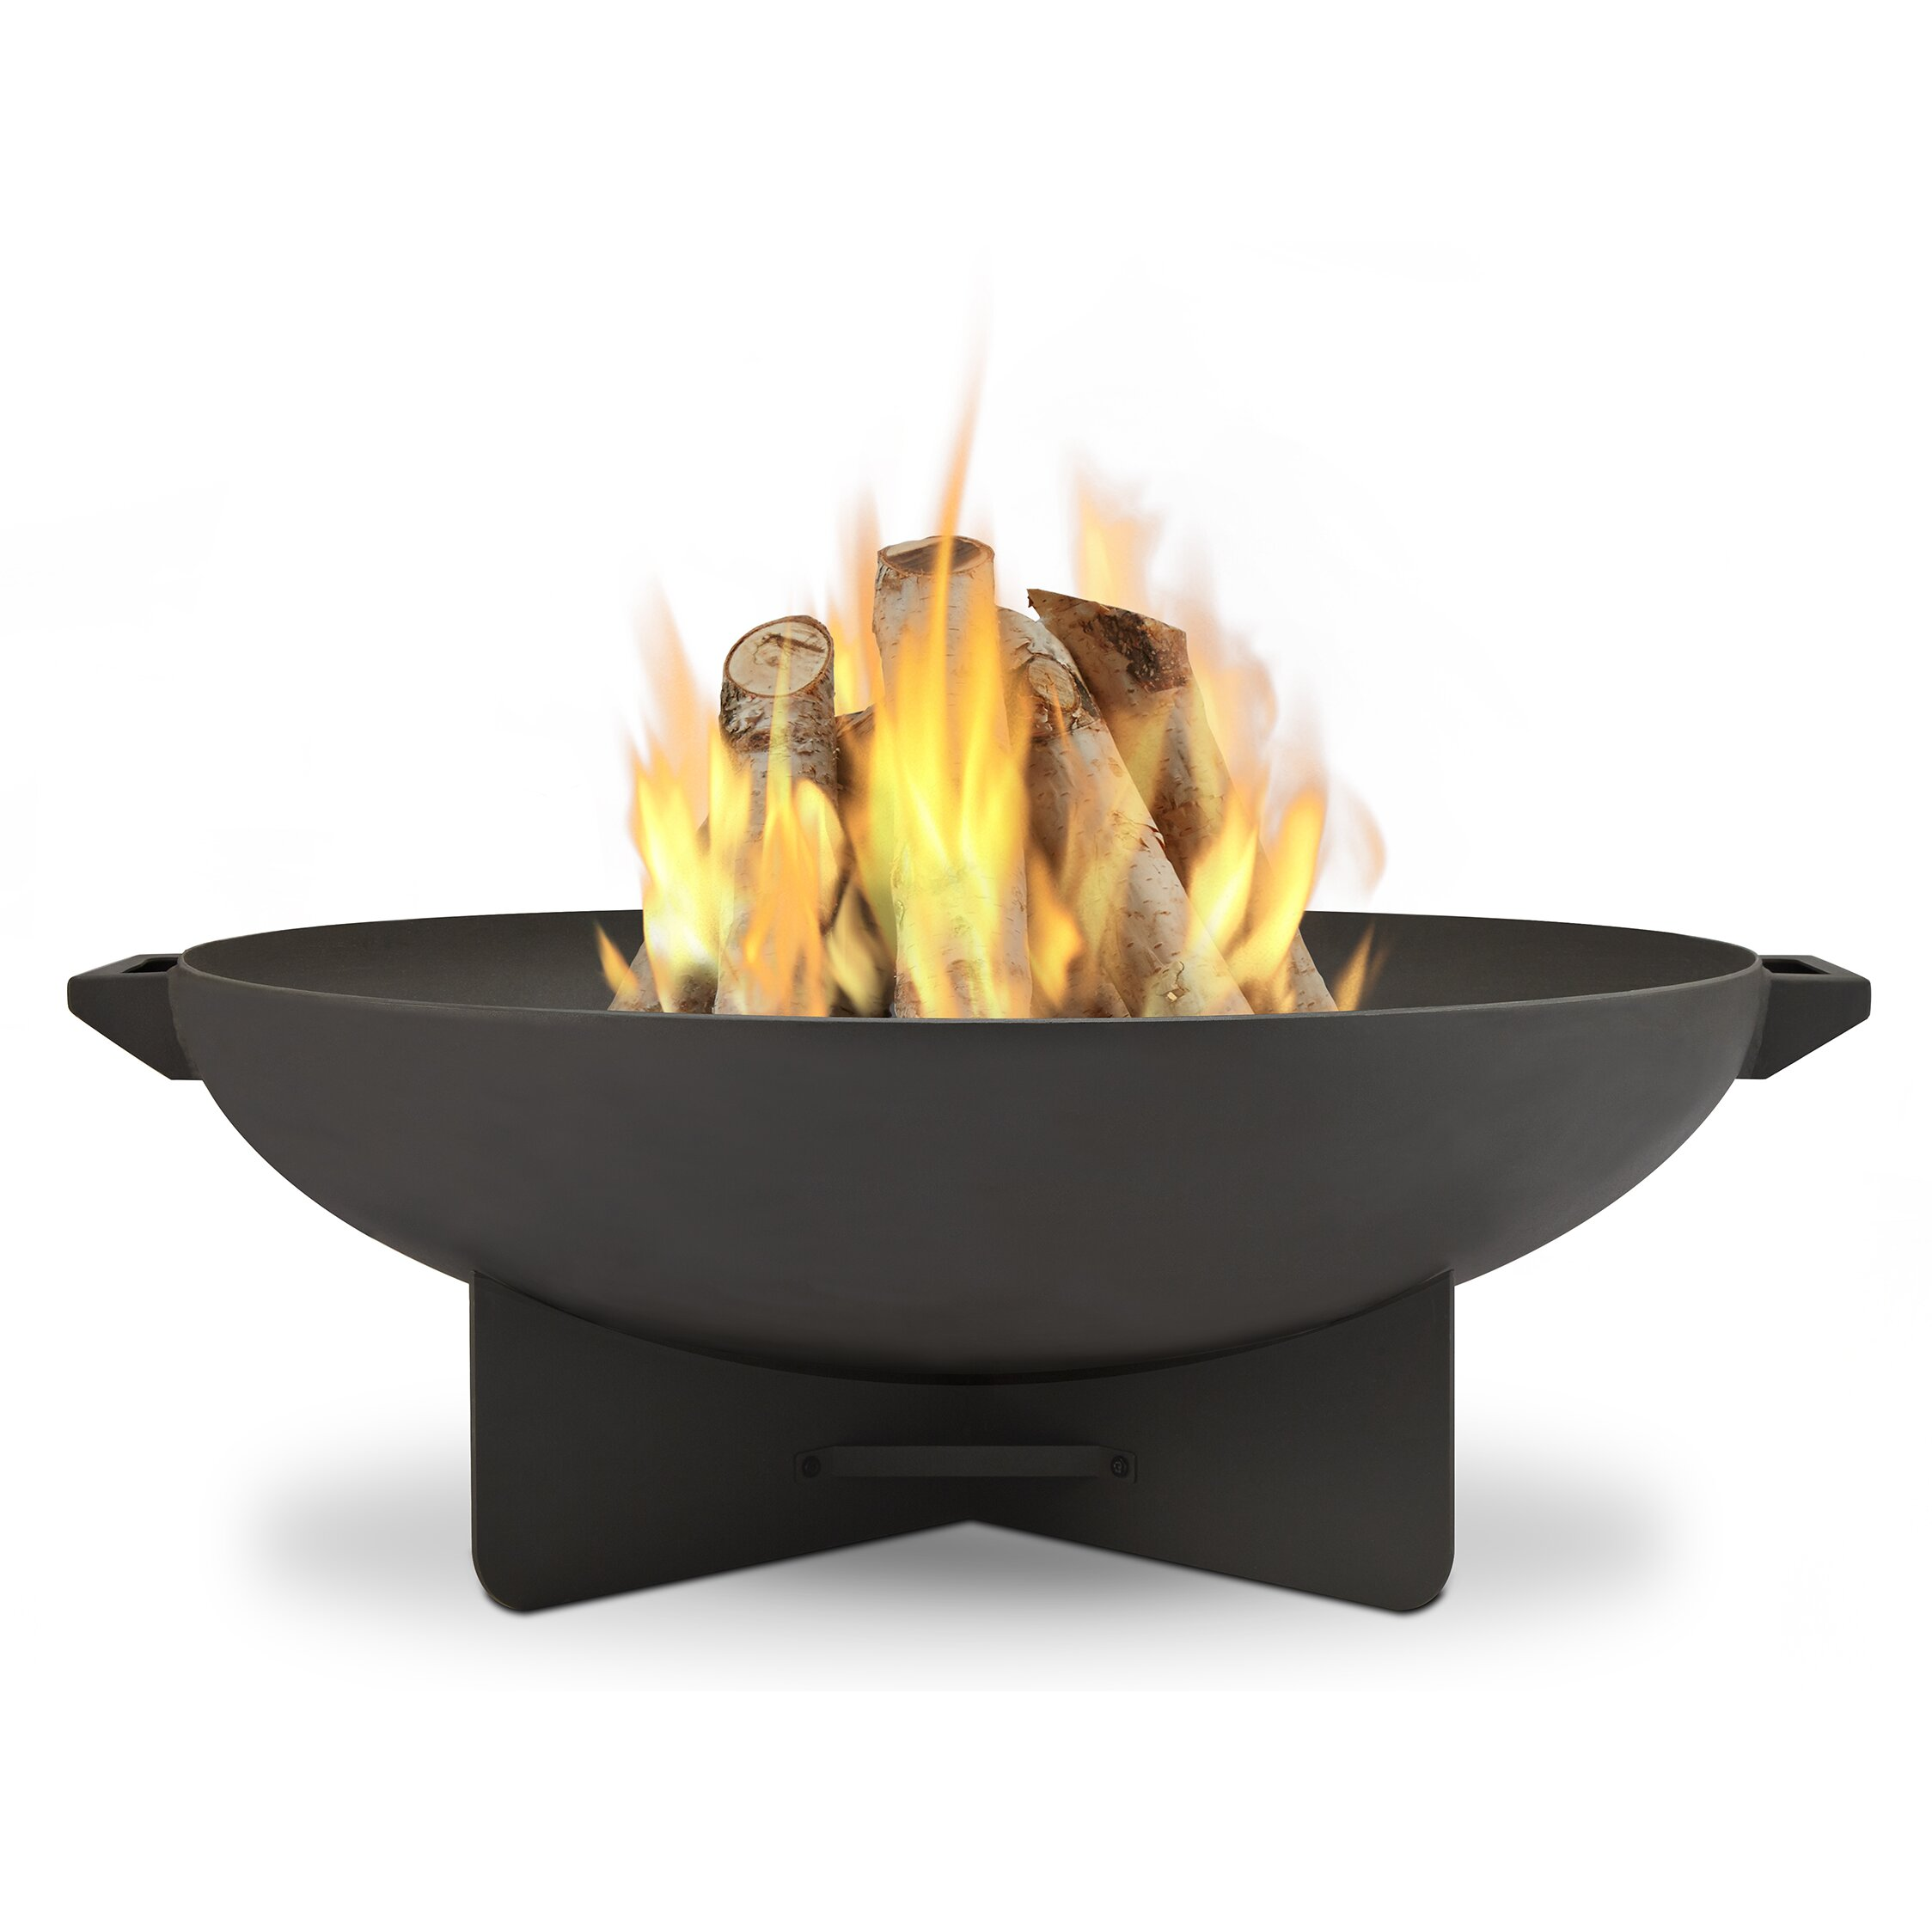 Real Flame Anson Wood Fire Pit & Reviews   Wayfair